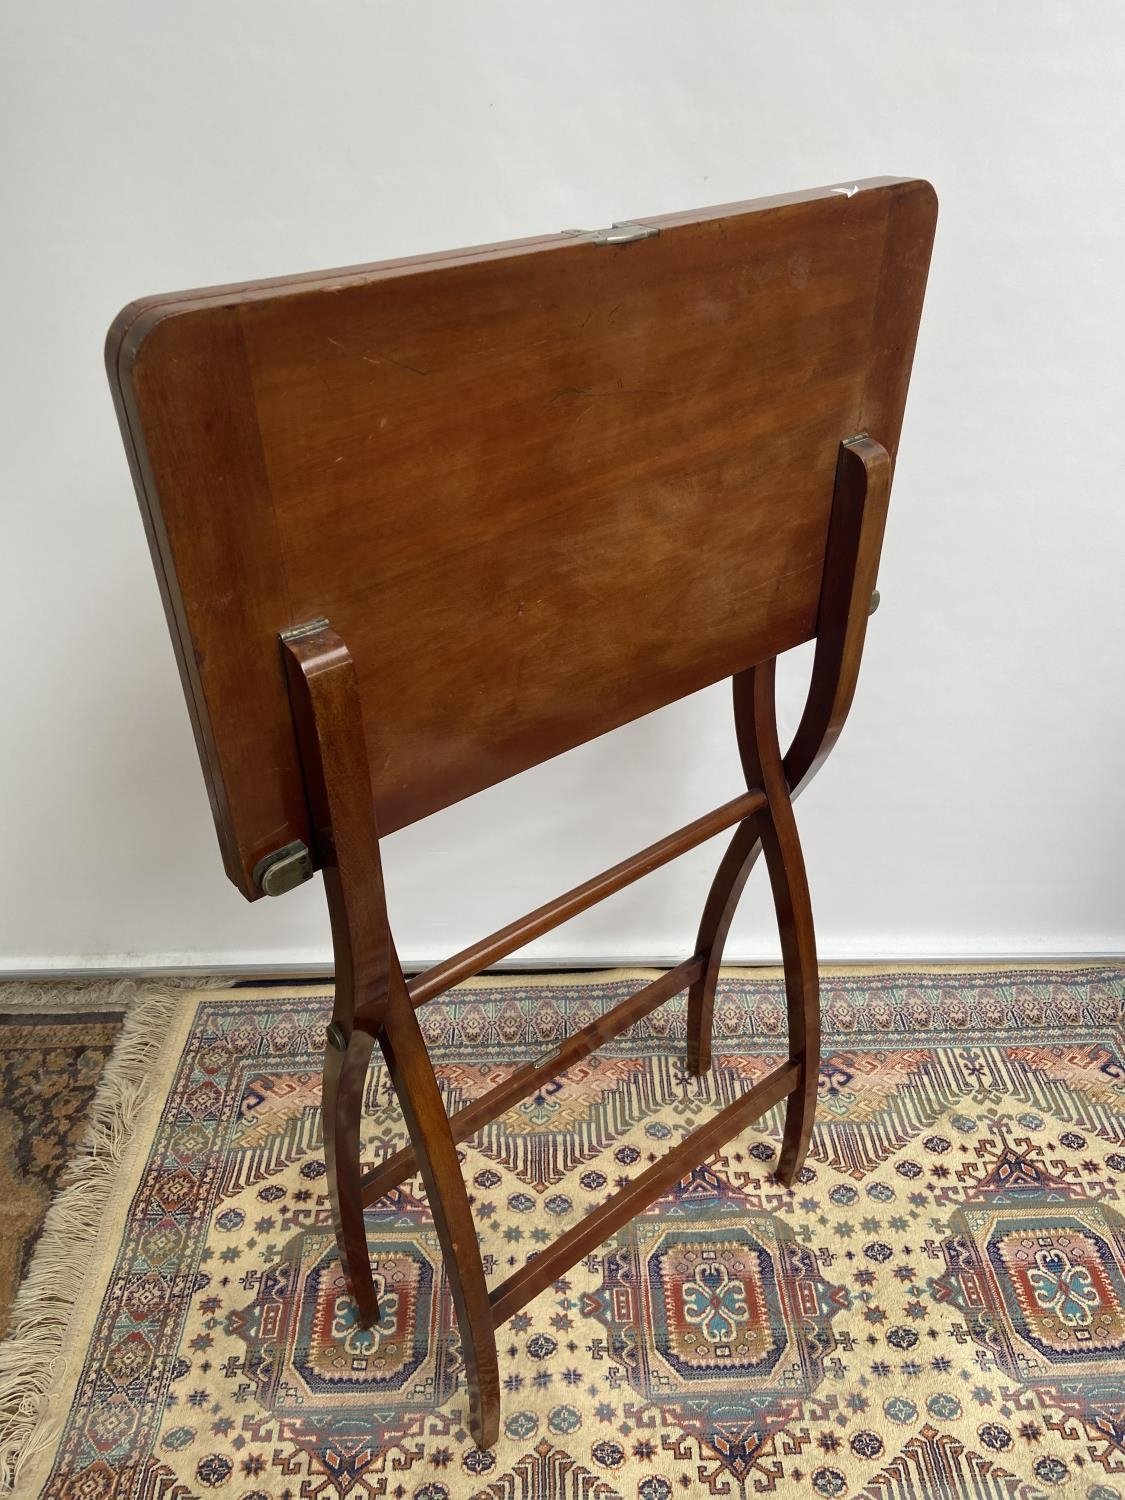 Antique Nawson Swan & Morgan folding card table/ writing table. [64cm in height, 75cm wide] - Image 4 of 6